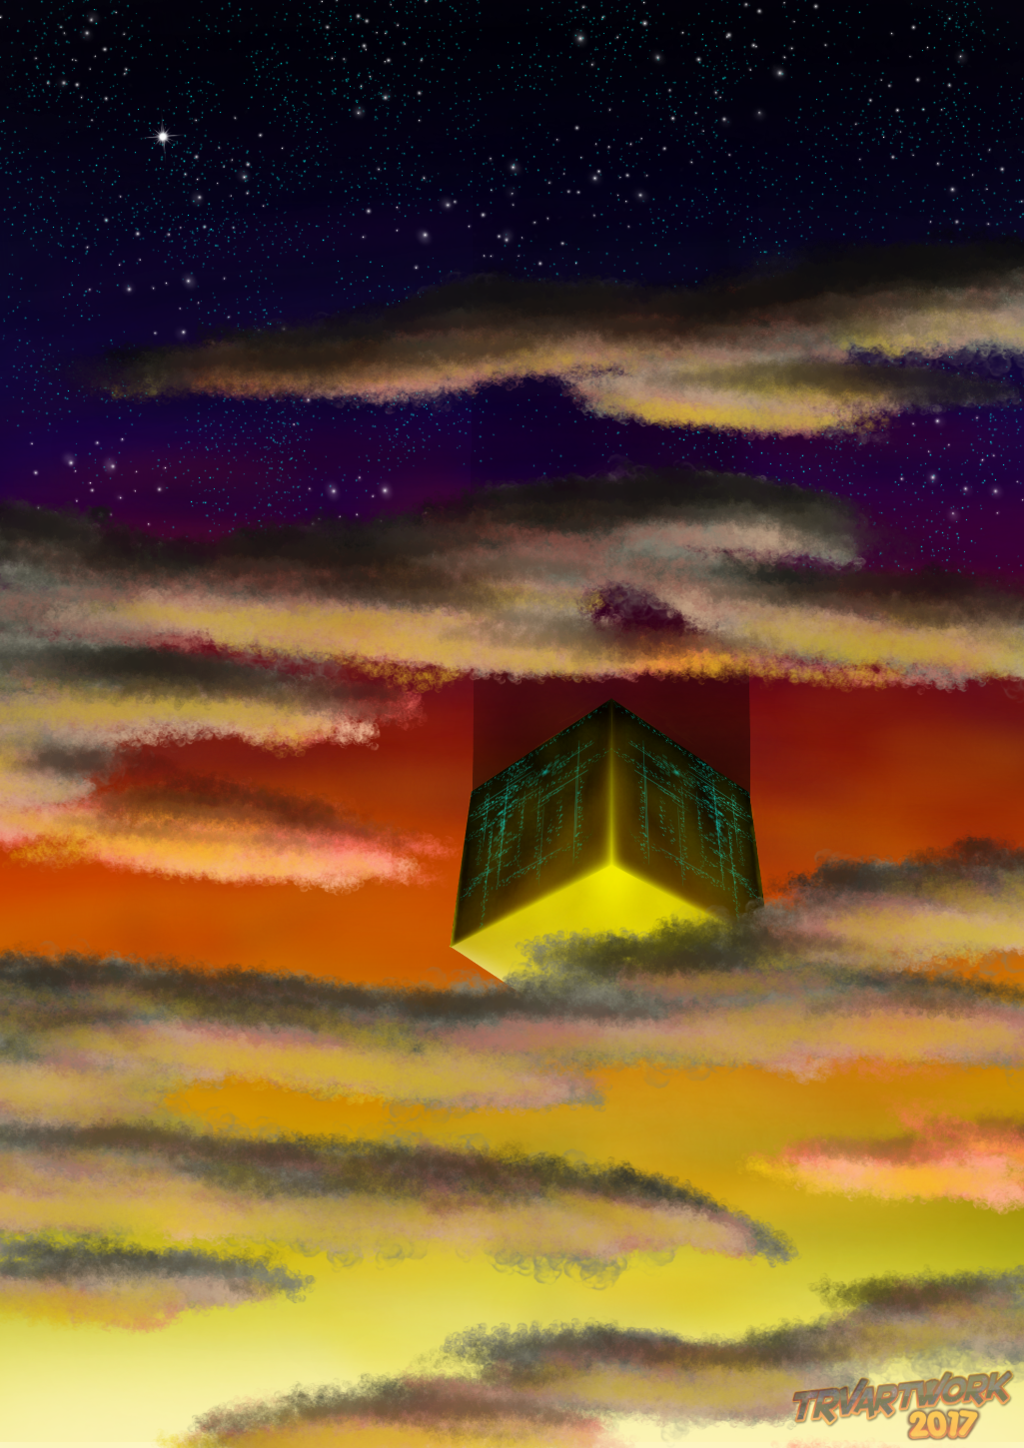 Most recent image: A Cube In The Sky